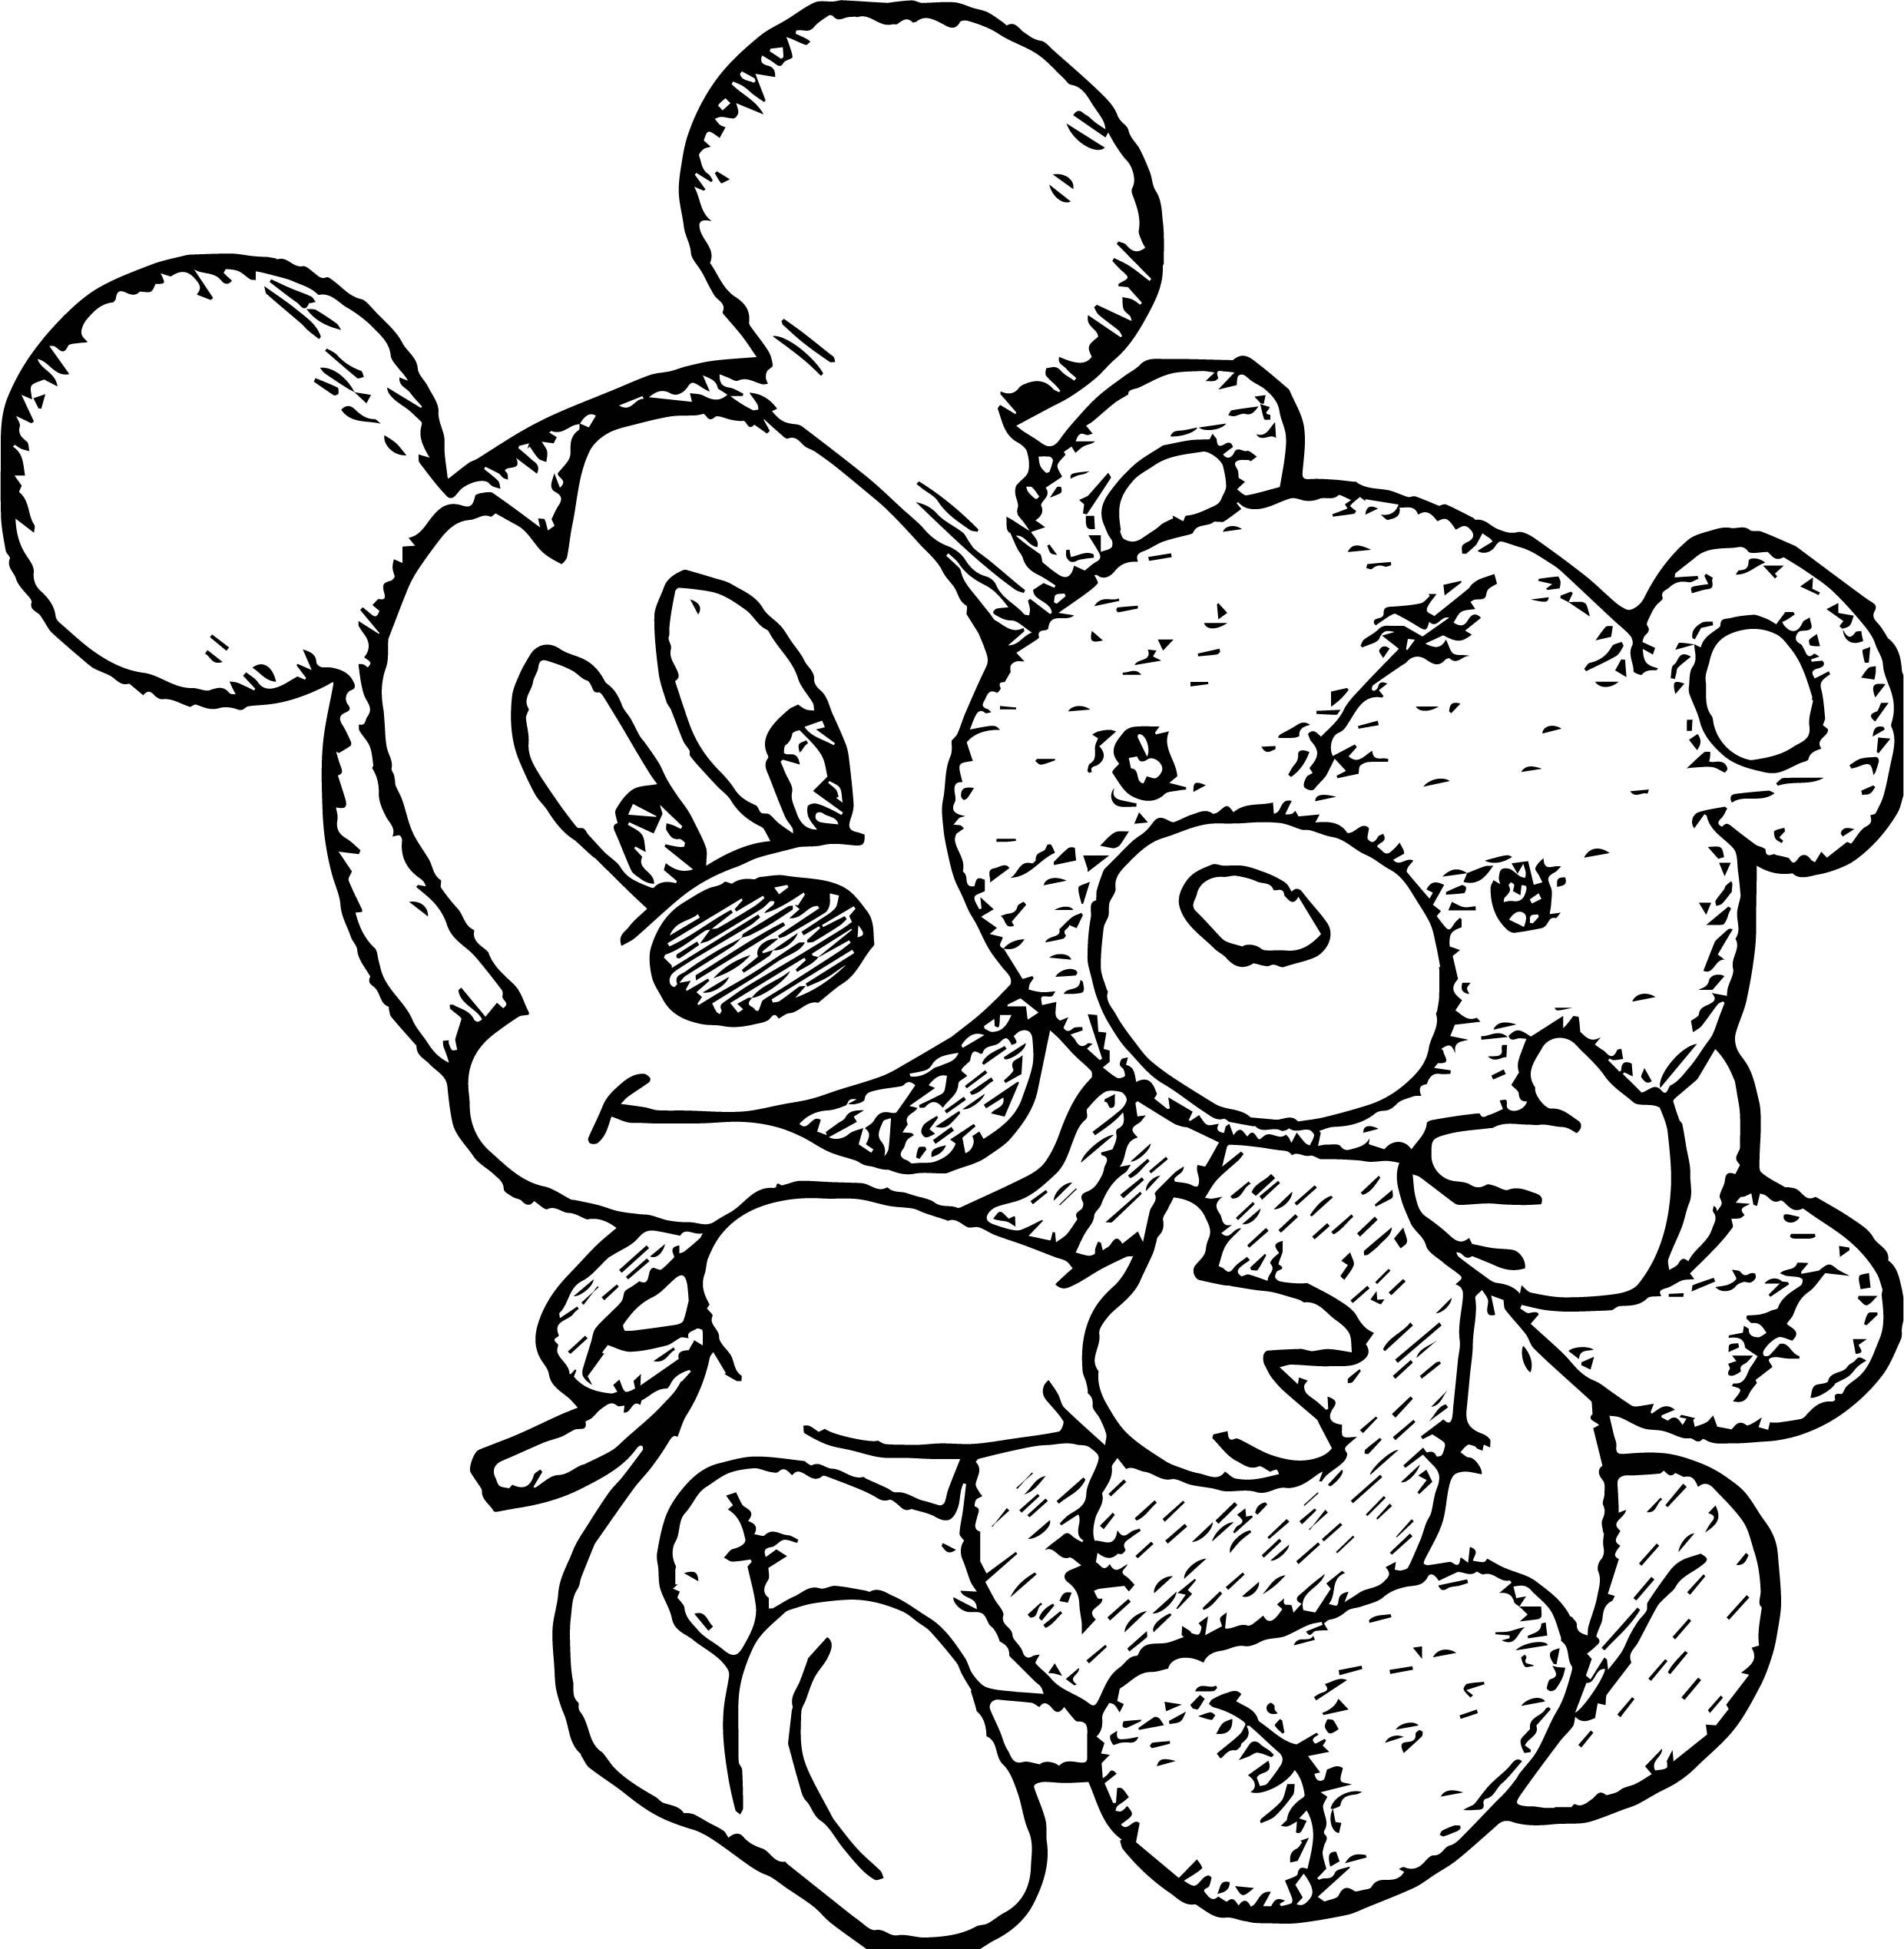 Awesome Baby Mickey Cute Bears Toy Coloring Page Bear Toy Baby Mickey Cute Bears